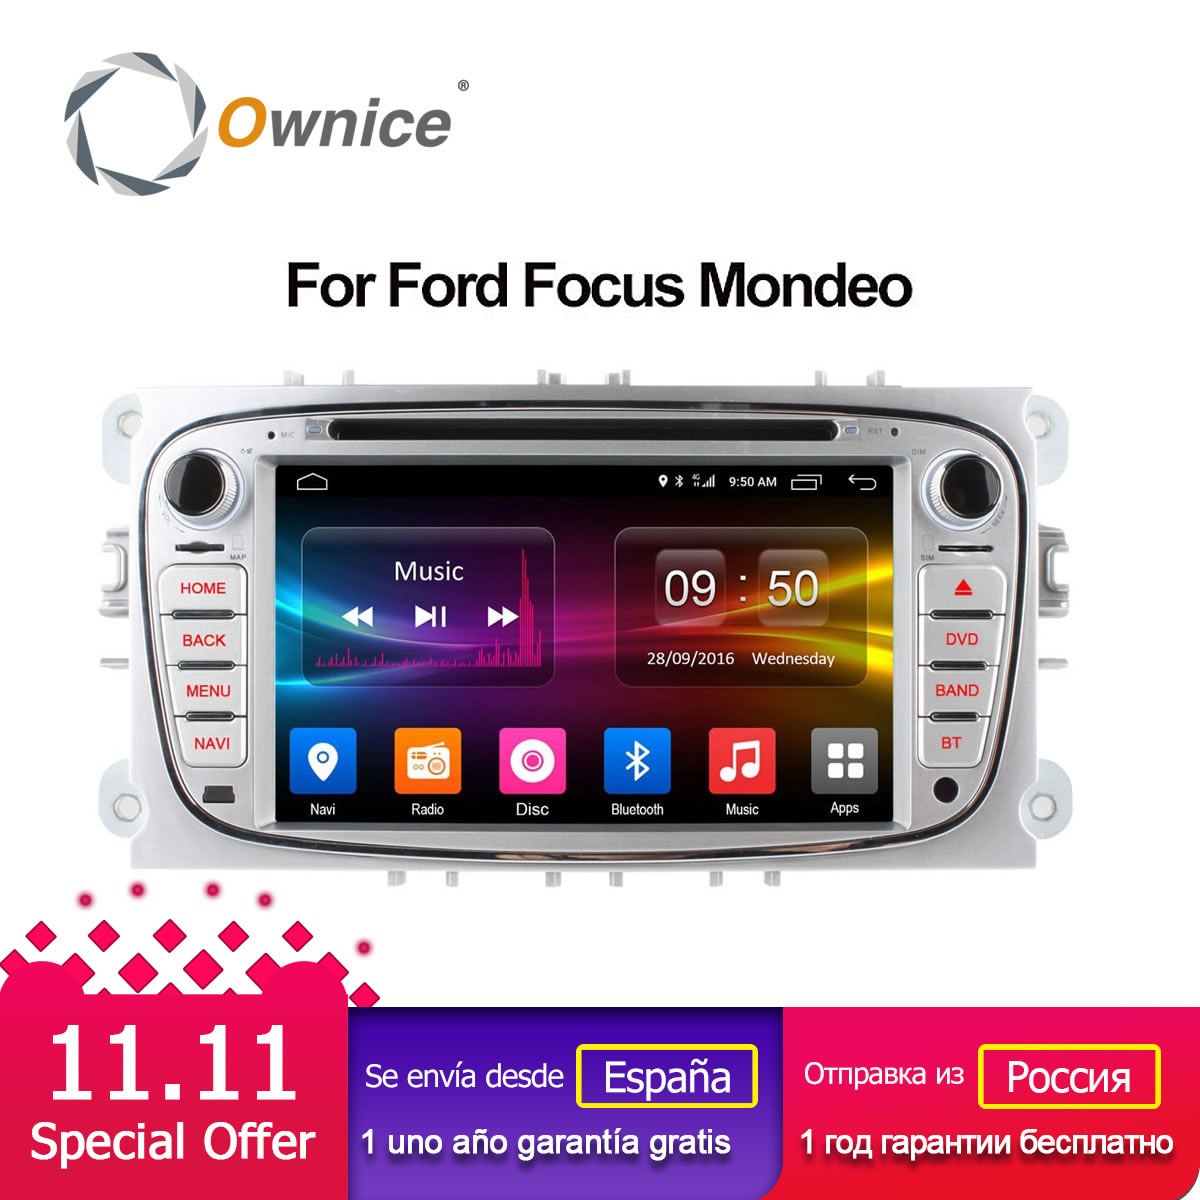 Ownice C500 Android 6.0 Octa Core 32G ROM Car DVD player GPS for Ford Mondeo S-Max Cmax Focus II GPS Radio Support 4G LTE ownice c500 android 6 0 octa 8 core 4g sim lte car dvd player for great wall hover h3 h5 with gps navigation radio 32g rom